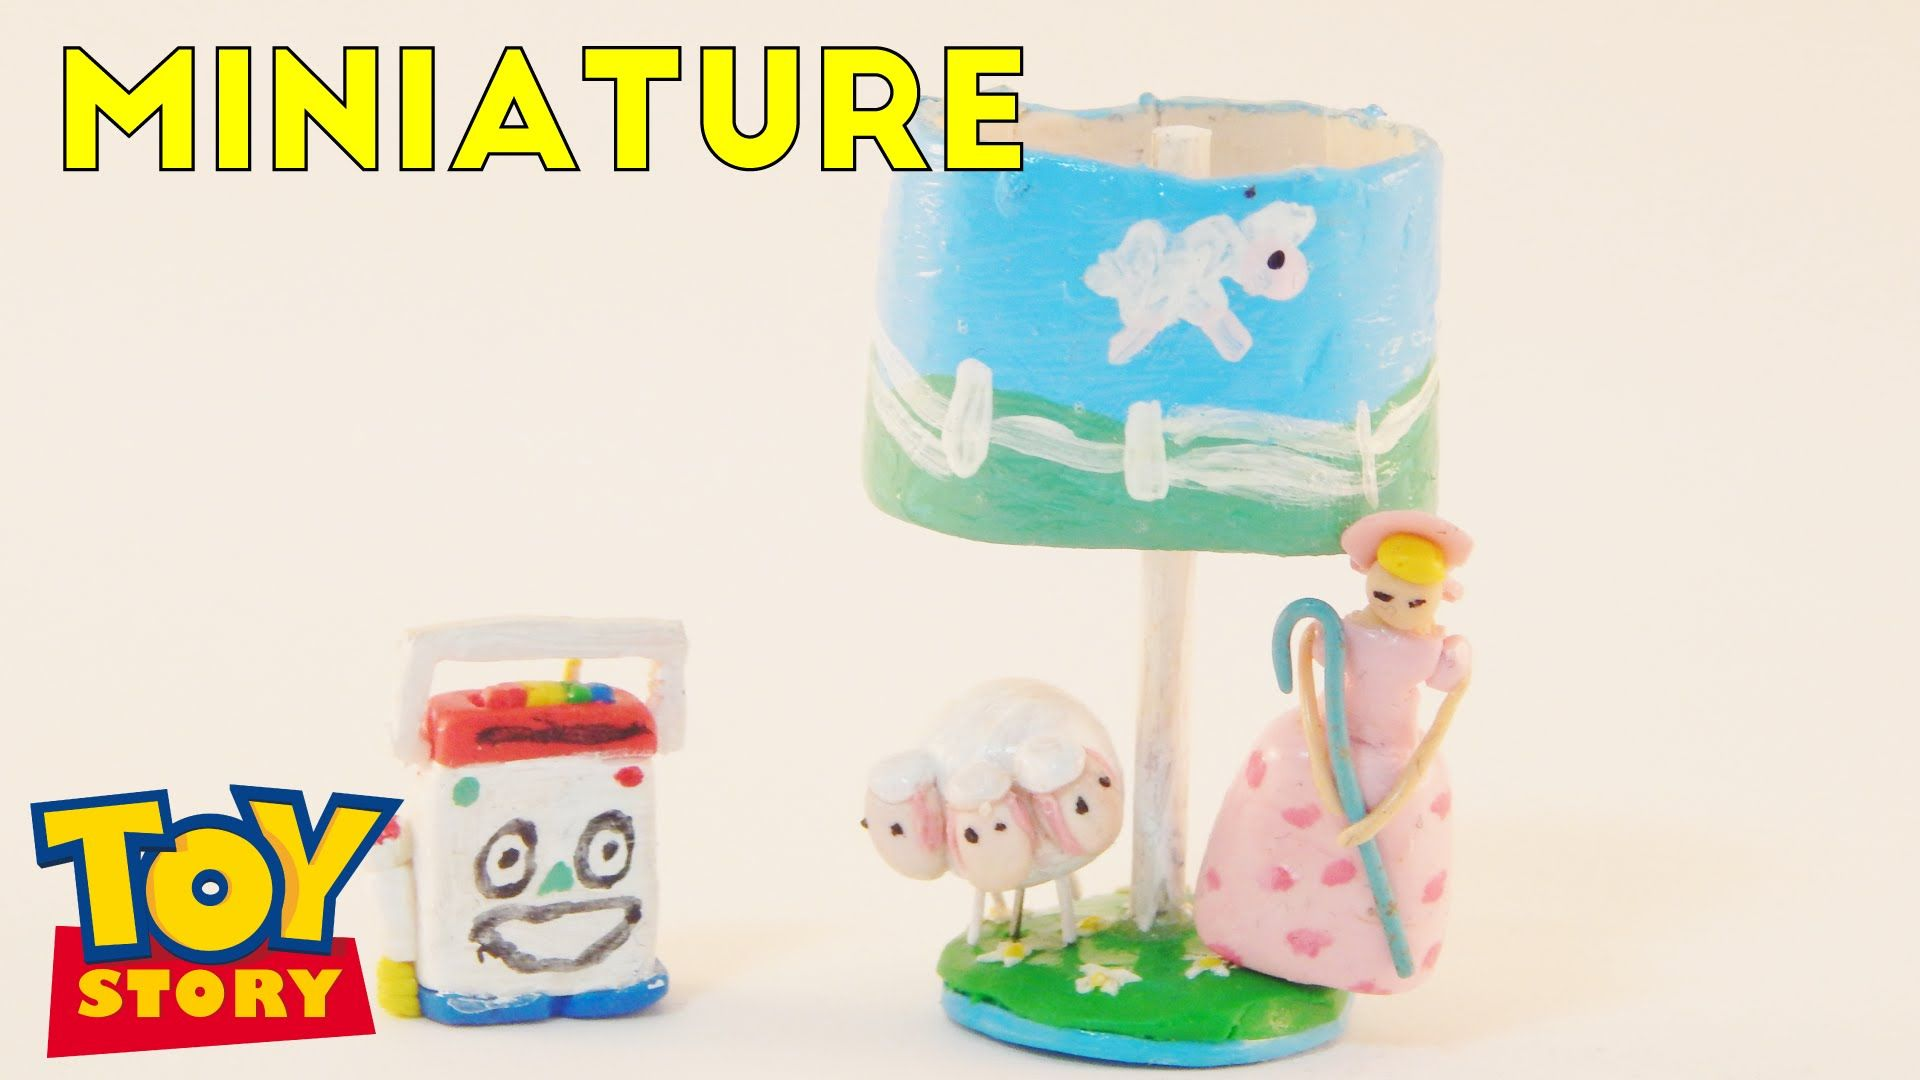 Mr Mike And Little Bo Peep Lamp Toy Story Miniature Room Box 1 12 Room Box Miniatures Little Bo Peep